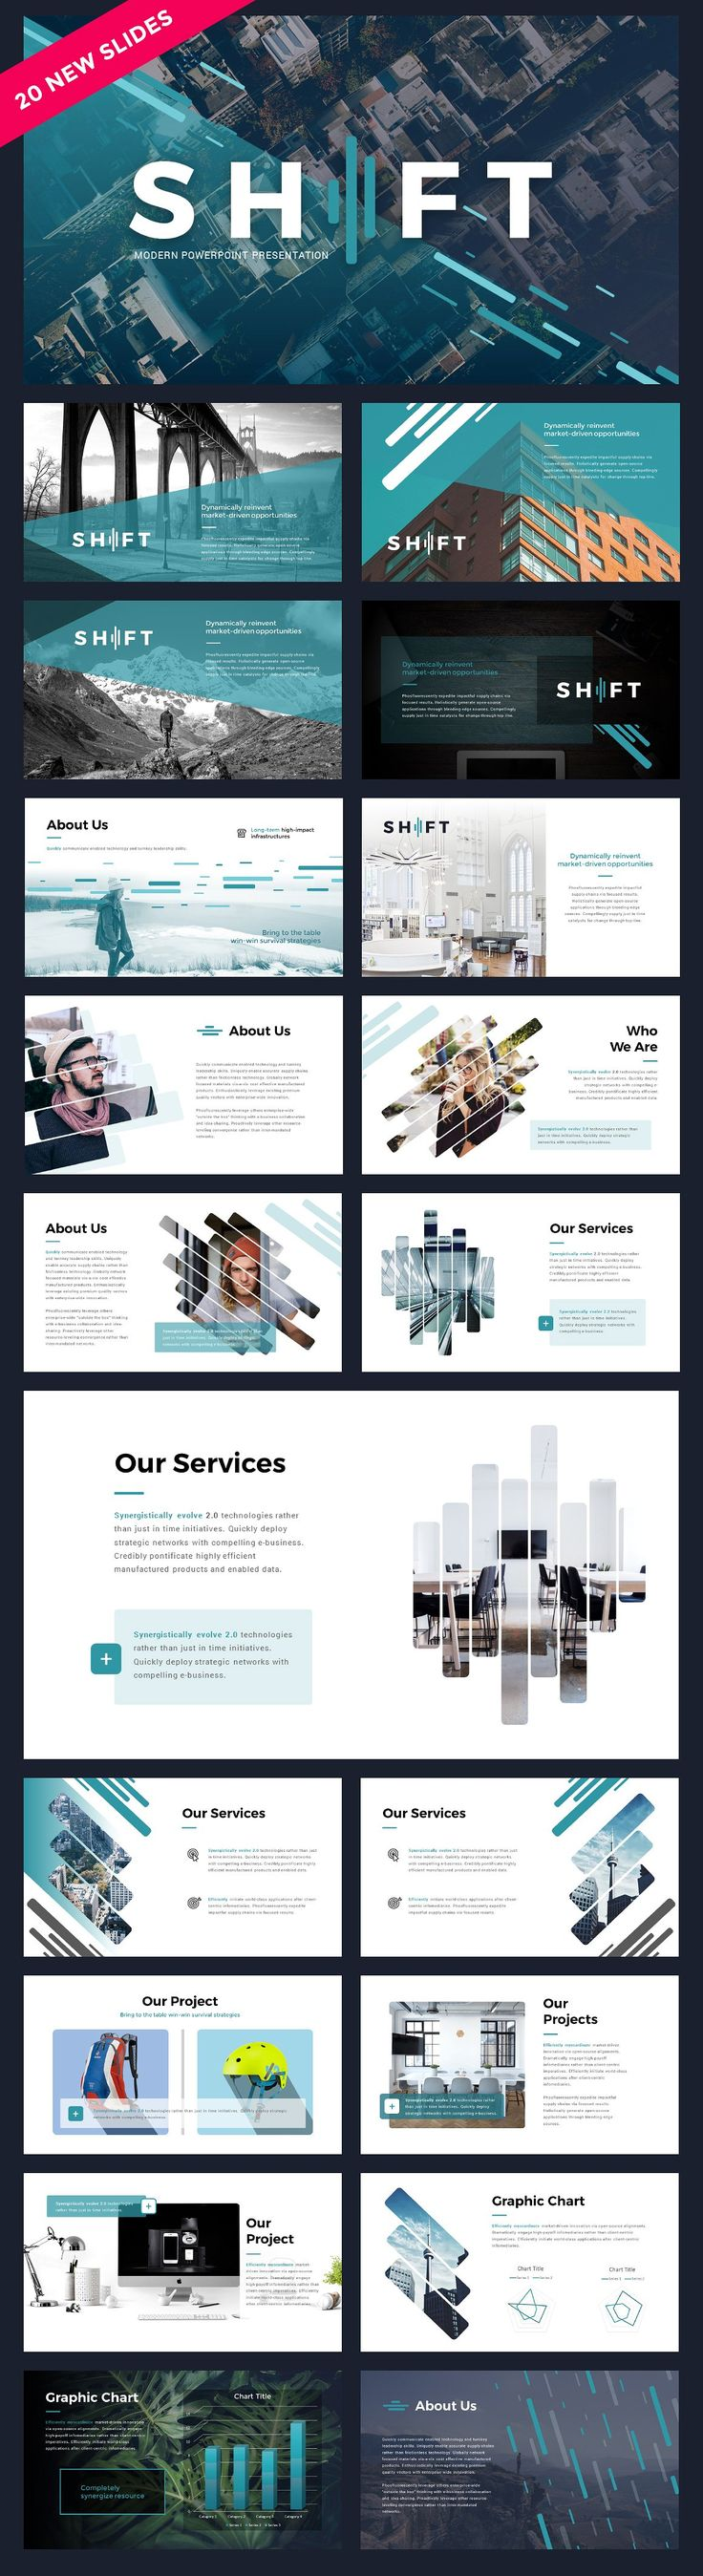 Modern pitch deck slide presentation template for start-ups and other businesses. Features interesting graphics, modern typography, and subtle coloring.